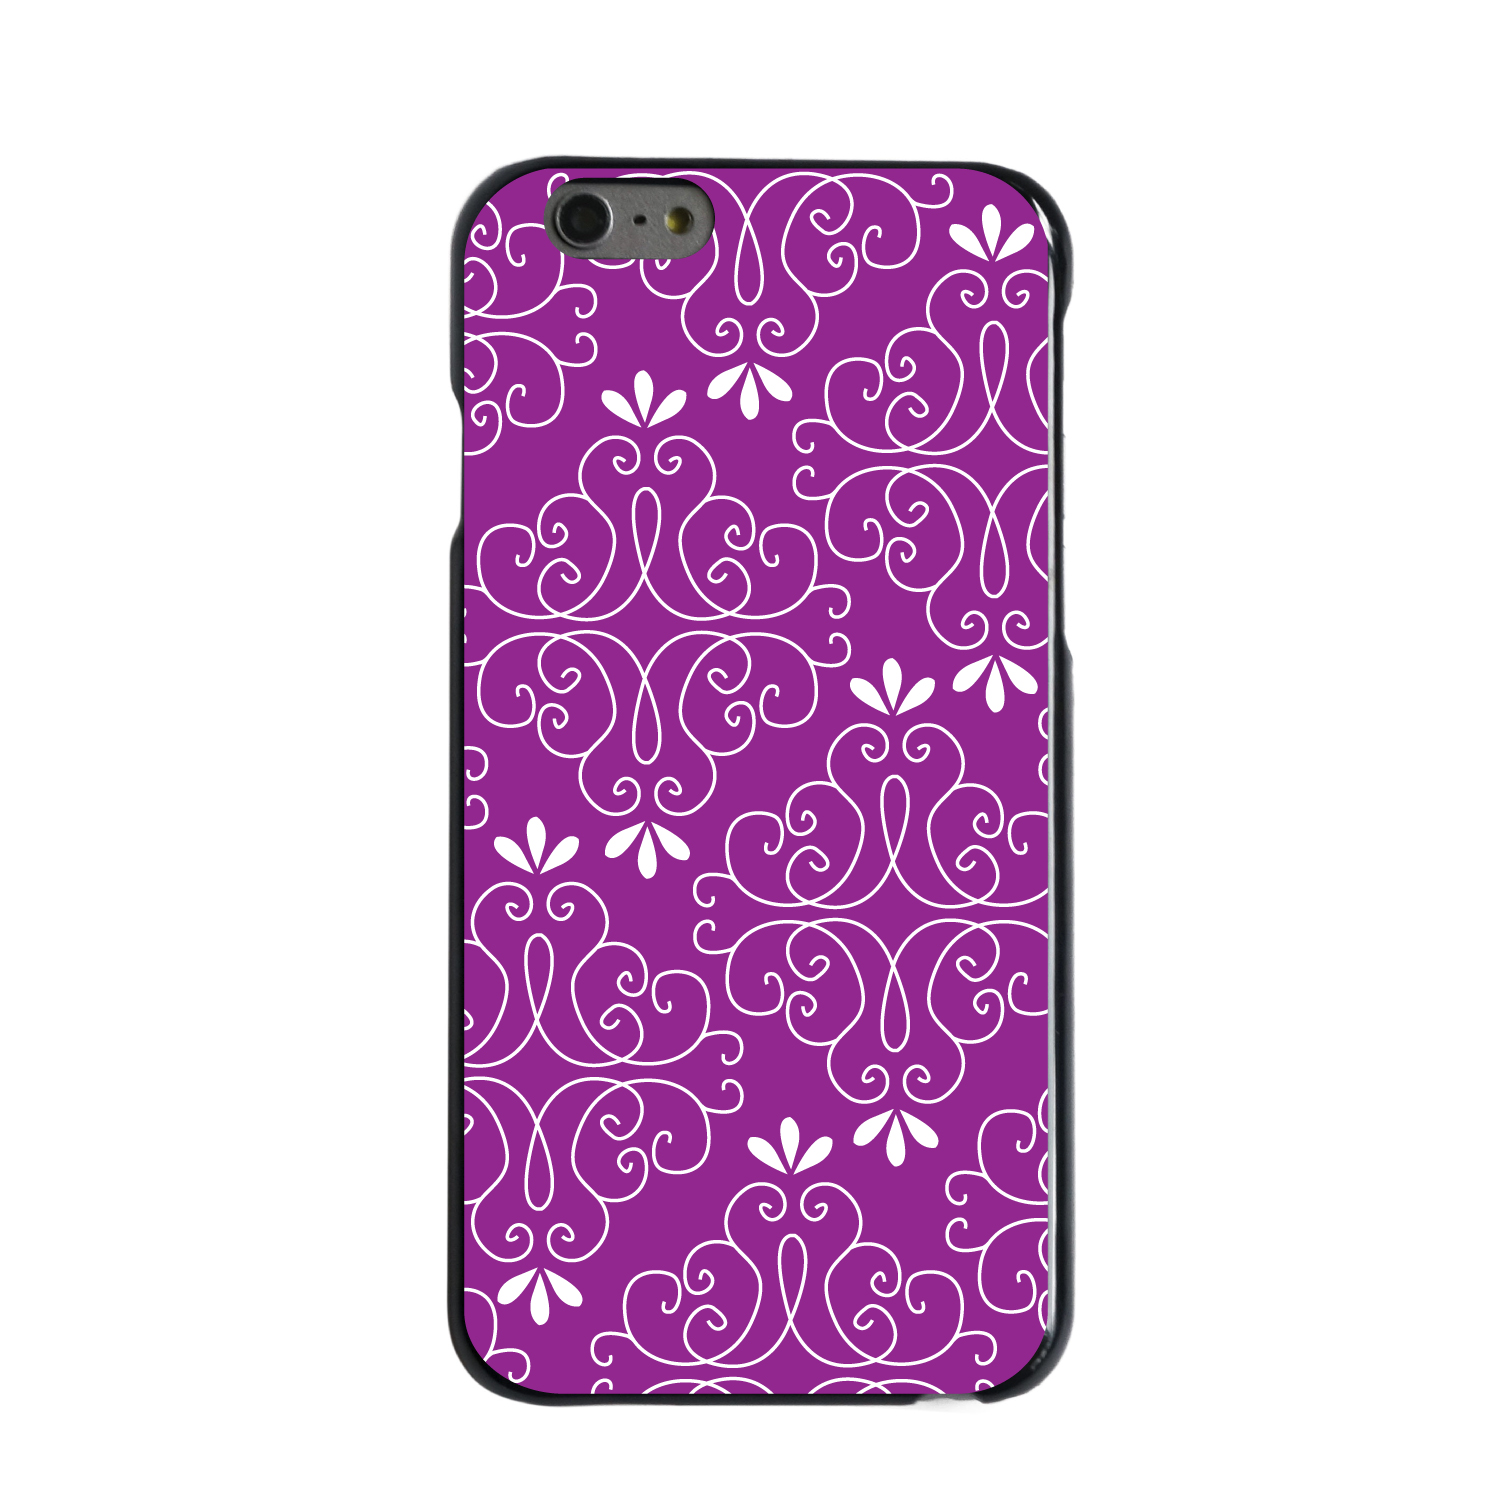 "CUSTOM Black Hard Plastic Snap-On Case for Apple iPhone 6 / 6S (4.7"" Screen) - Fuchsia White Floral"